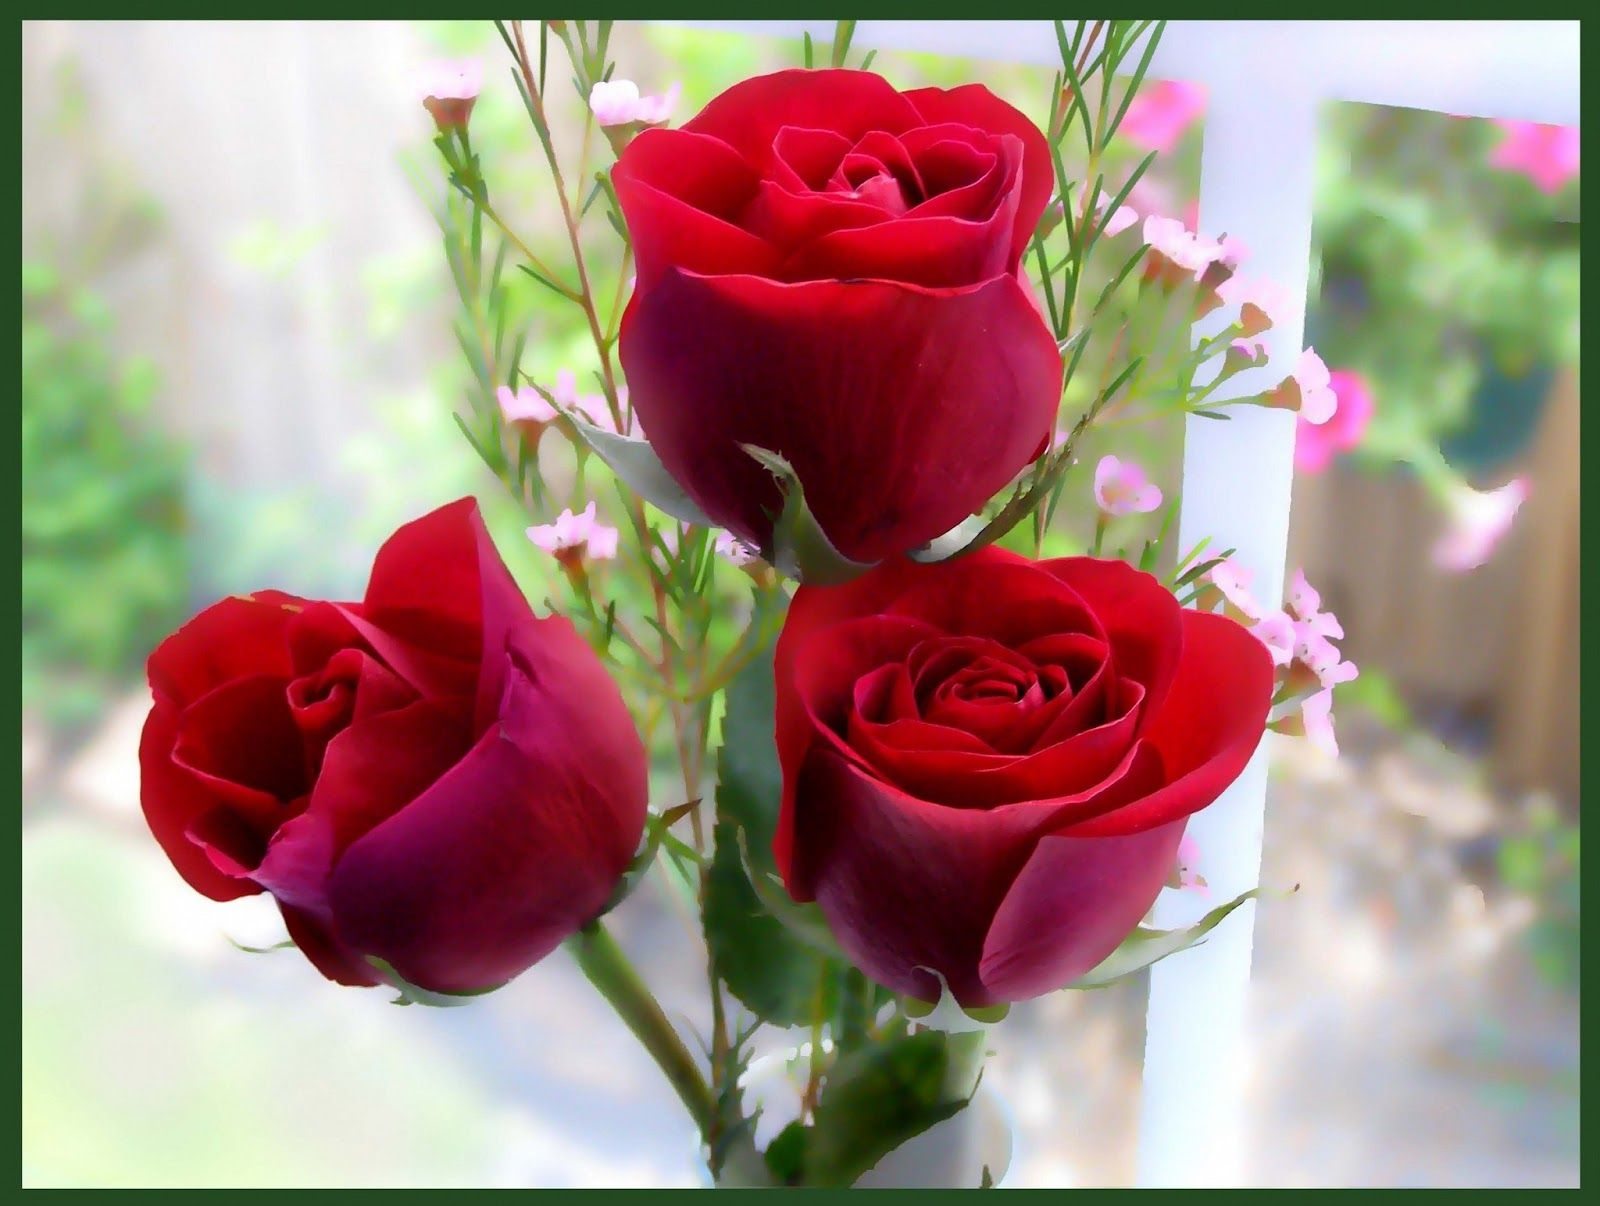 Rose Flowers Wallpaper Android Apps on Google Play | HD Wallpapers ...